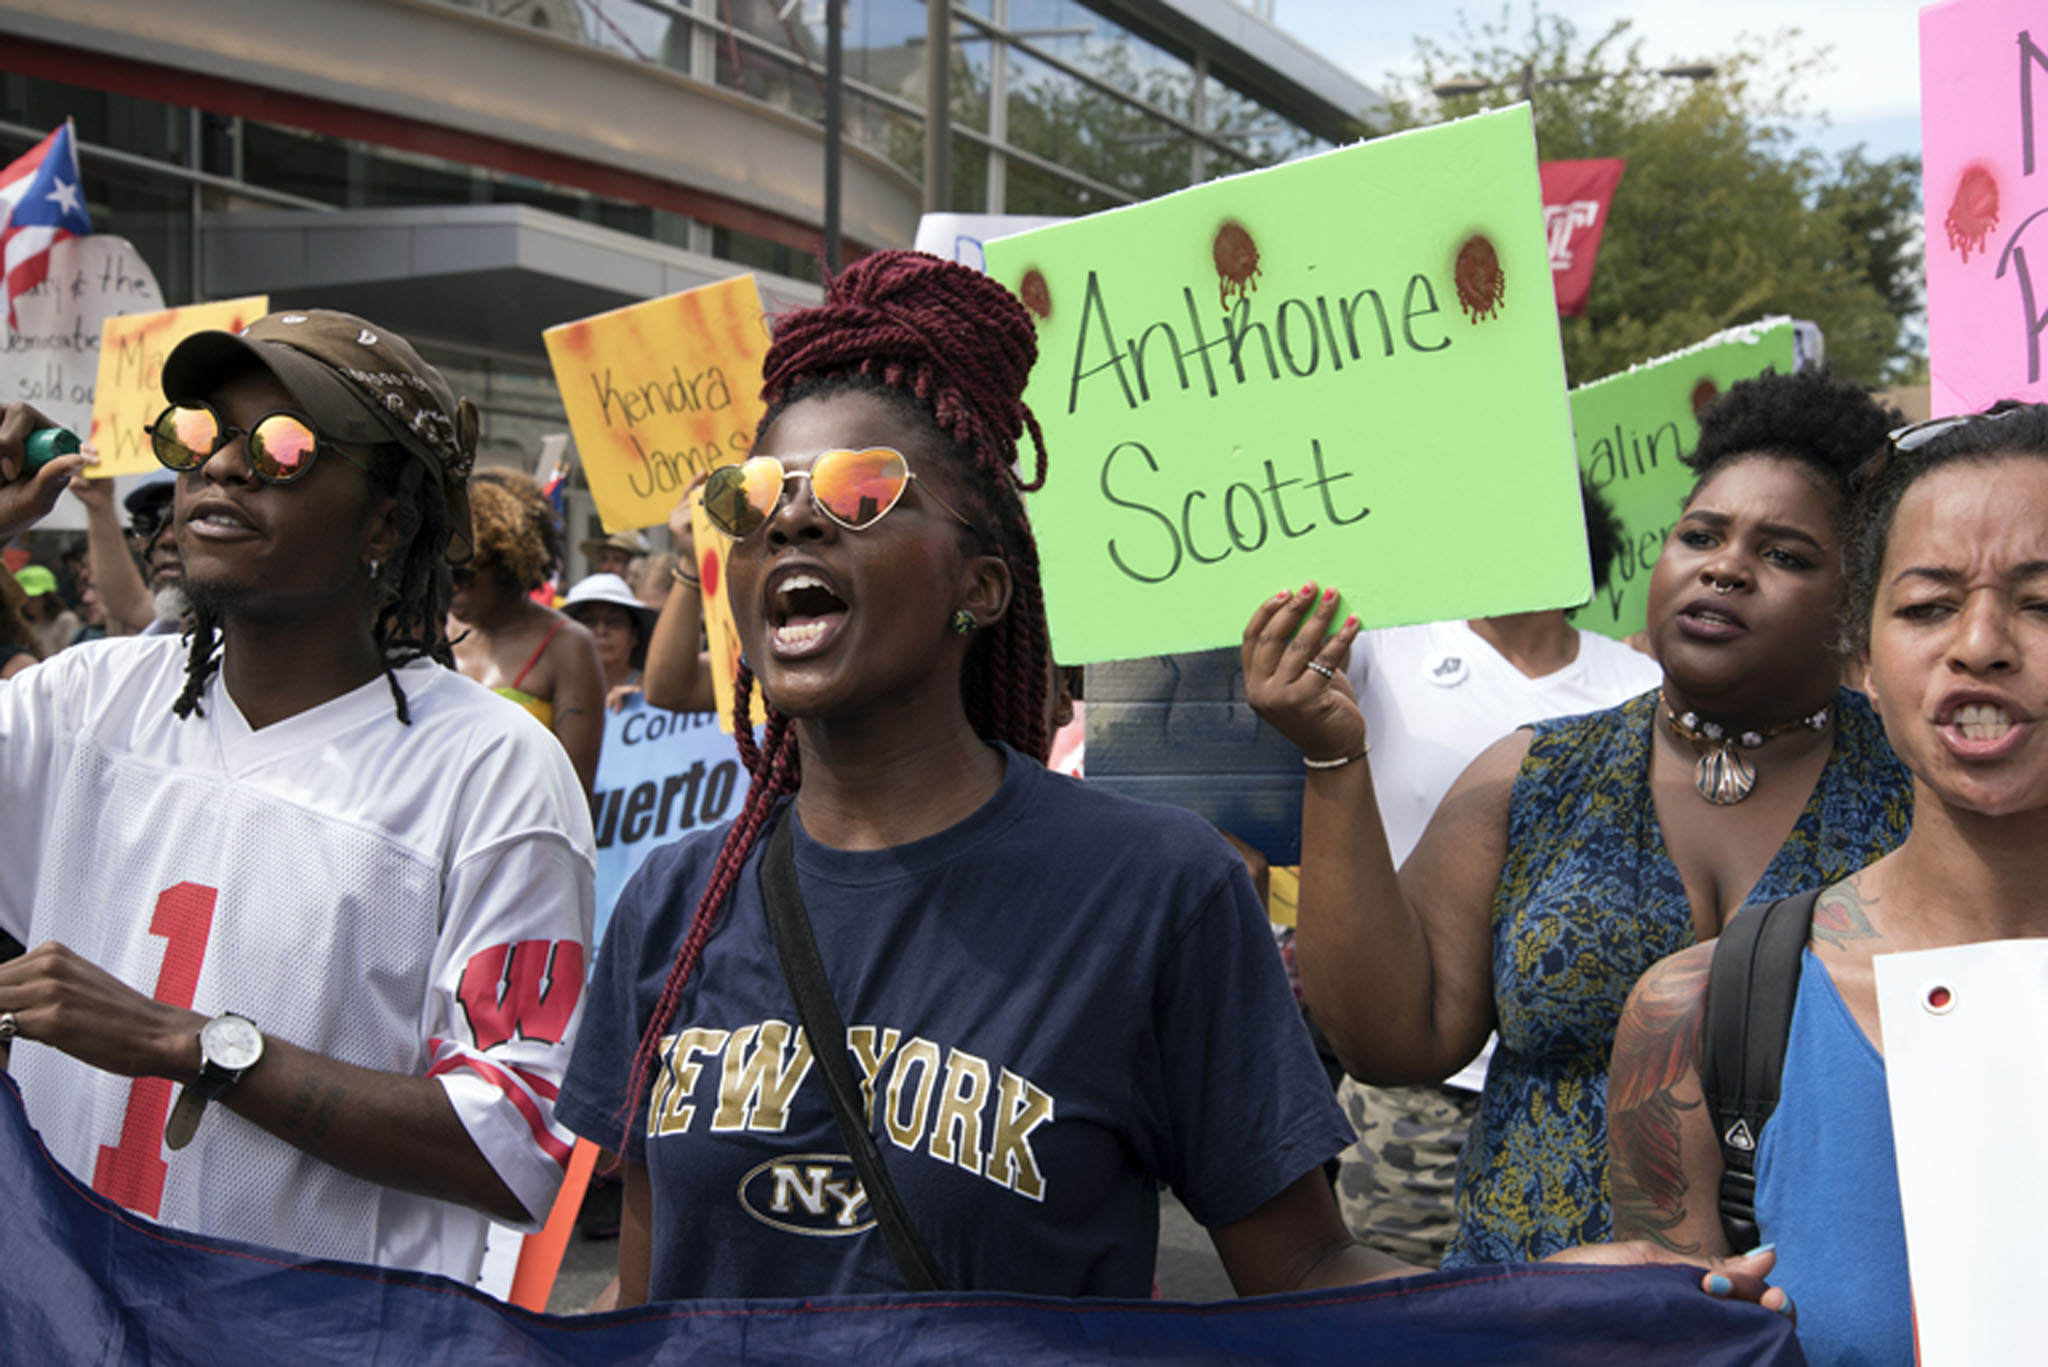 Emotions are high as protesters march down Broad street to protest against police-involved shootings of unarmed black men, and other racial issues on Tuesday, July 26th, 2016. The protest is lead by Philadelphia REAL Coalition and Black Lives Matter. It also is taking place during the second day of the DNC. AARON RICKETTS / Staff Photographer